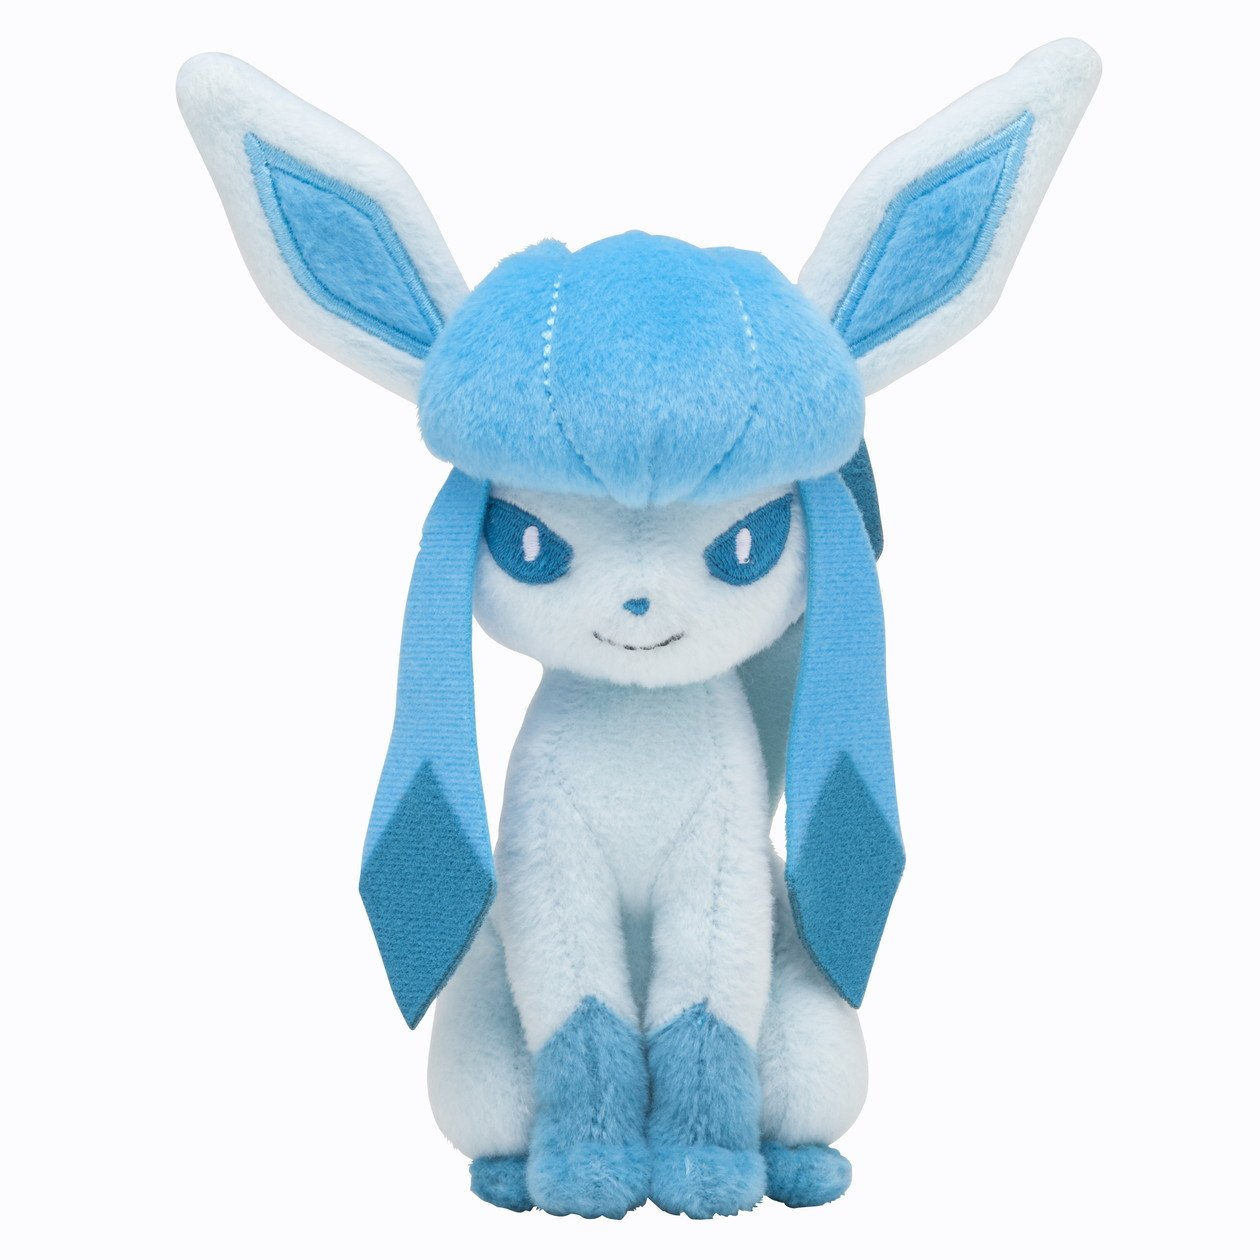 Pokémon Center Original Plush Doll Sitting Trick Pose Glaceon